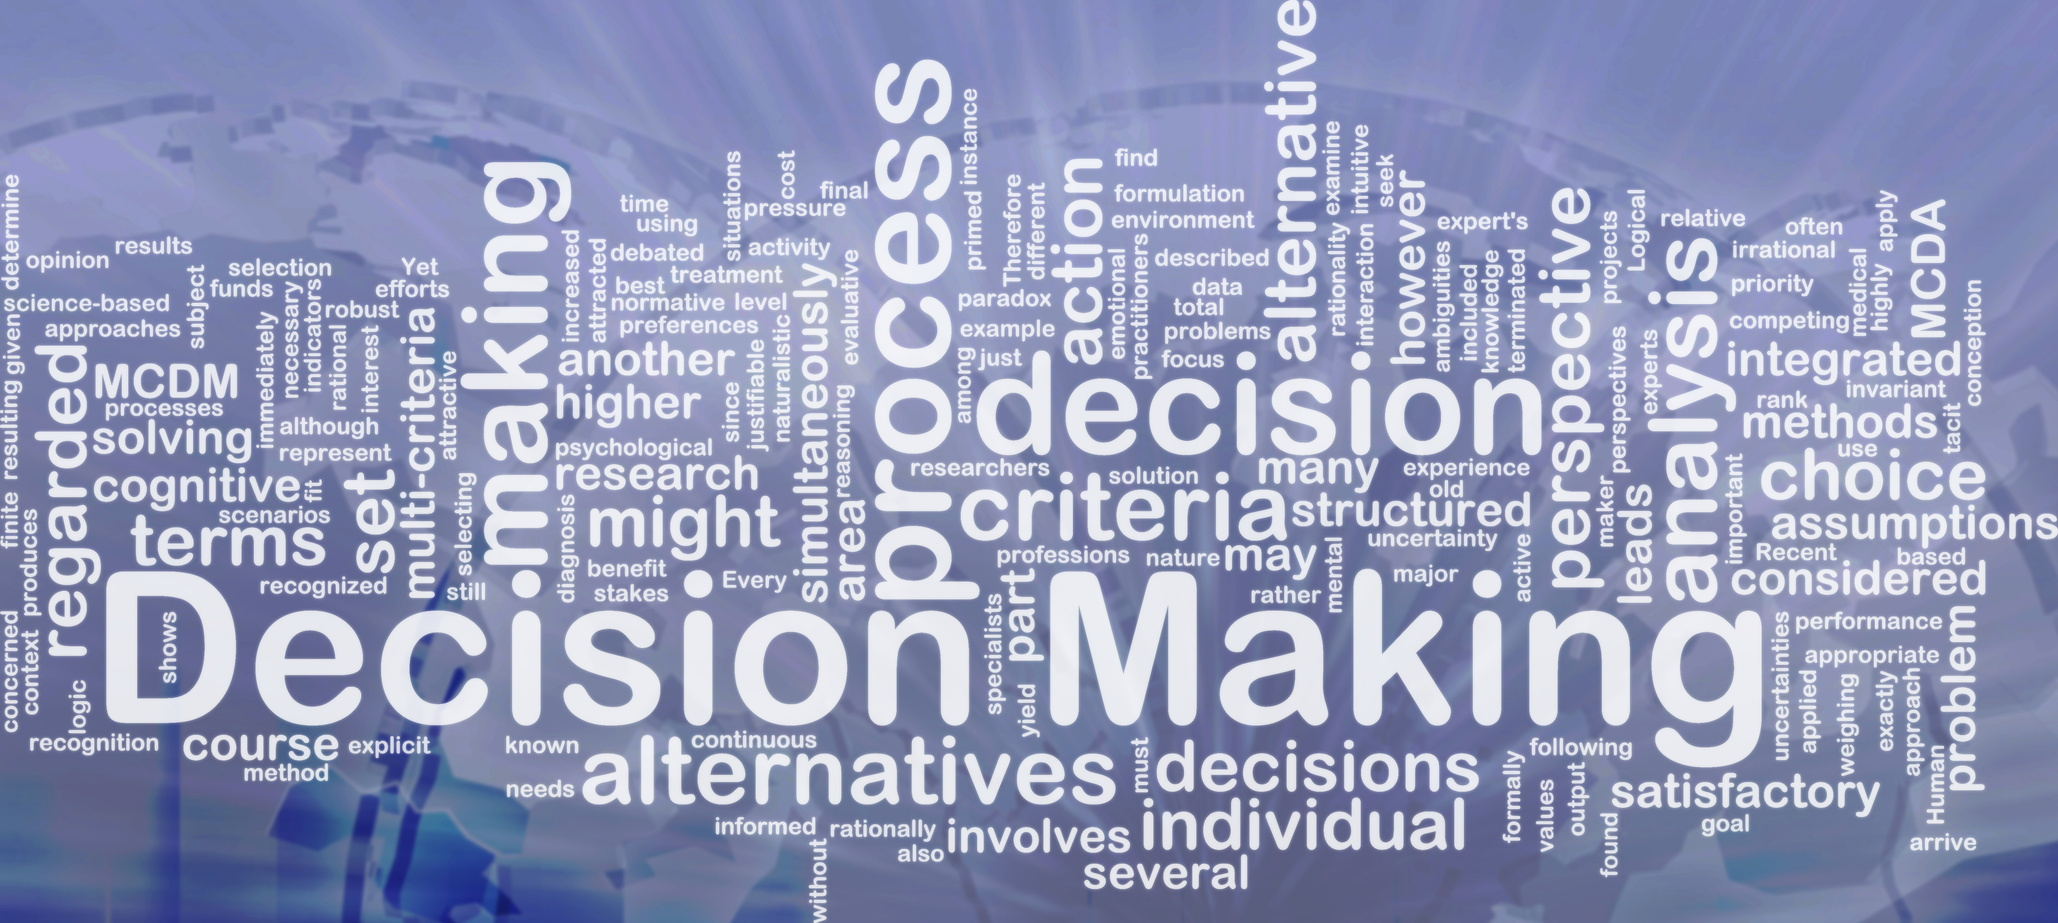 the informed decisions toolbox in healthcare decision making Shared decision making (sdm) is a collaborative, patient-directed decision making process that helps veterans, together with their family caregivers and health care team, set goals and priorities, and make choices that meet patient needs while honoring patient values and preferences.